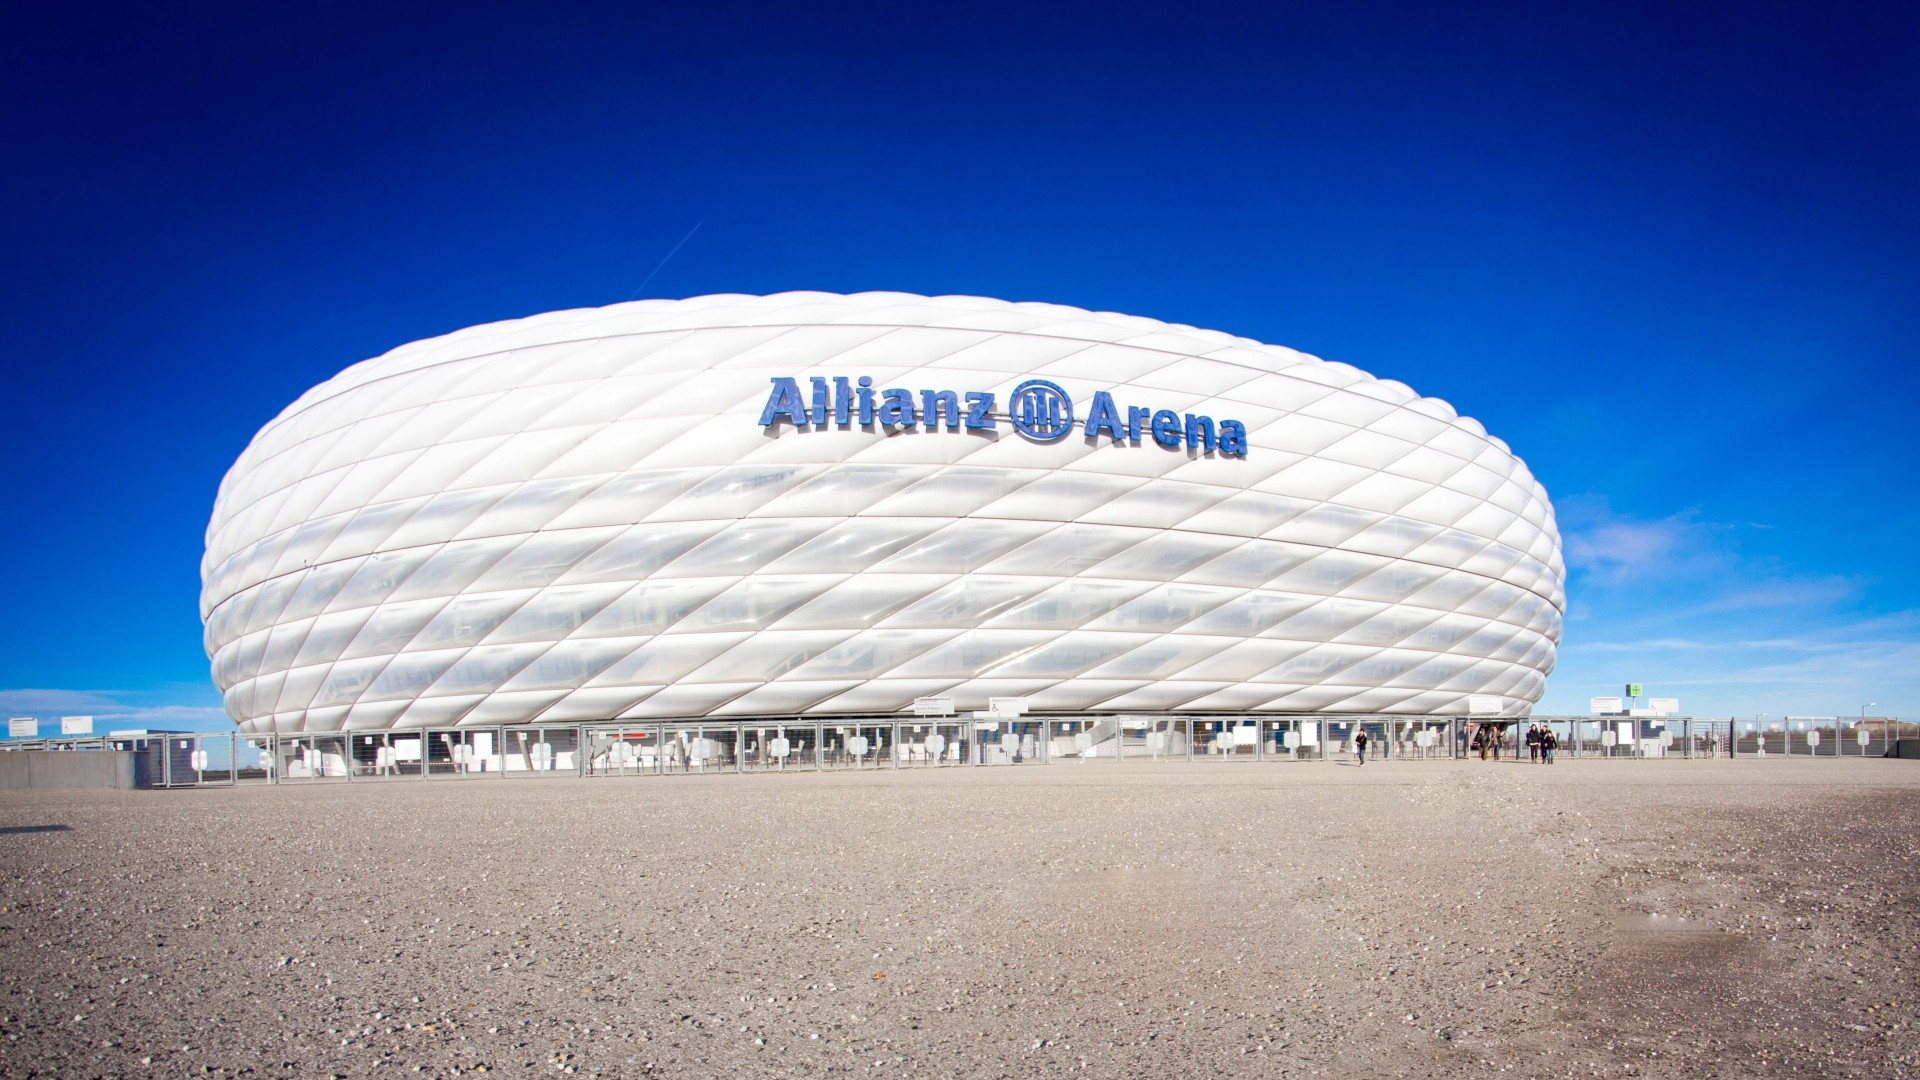 allianz arena stadium munich wallpapers 1920x1080 615527. Black Bedroom Furniture Sets. Home Design Ideas